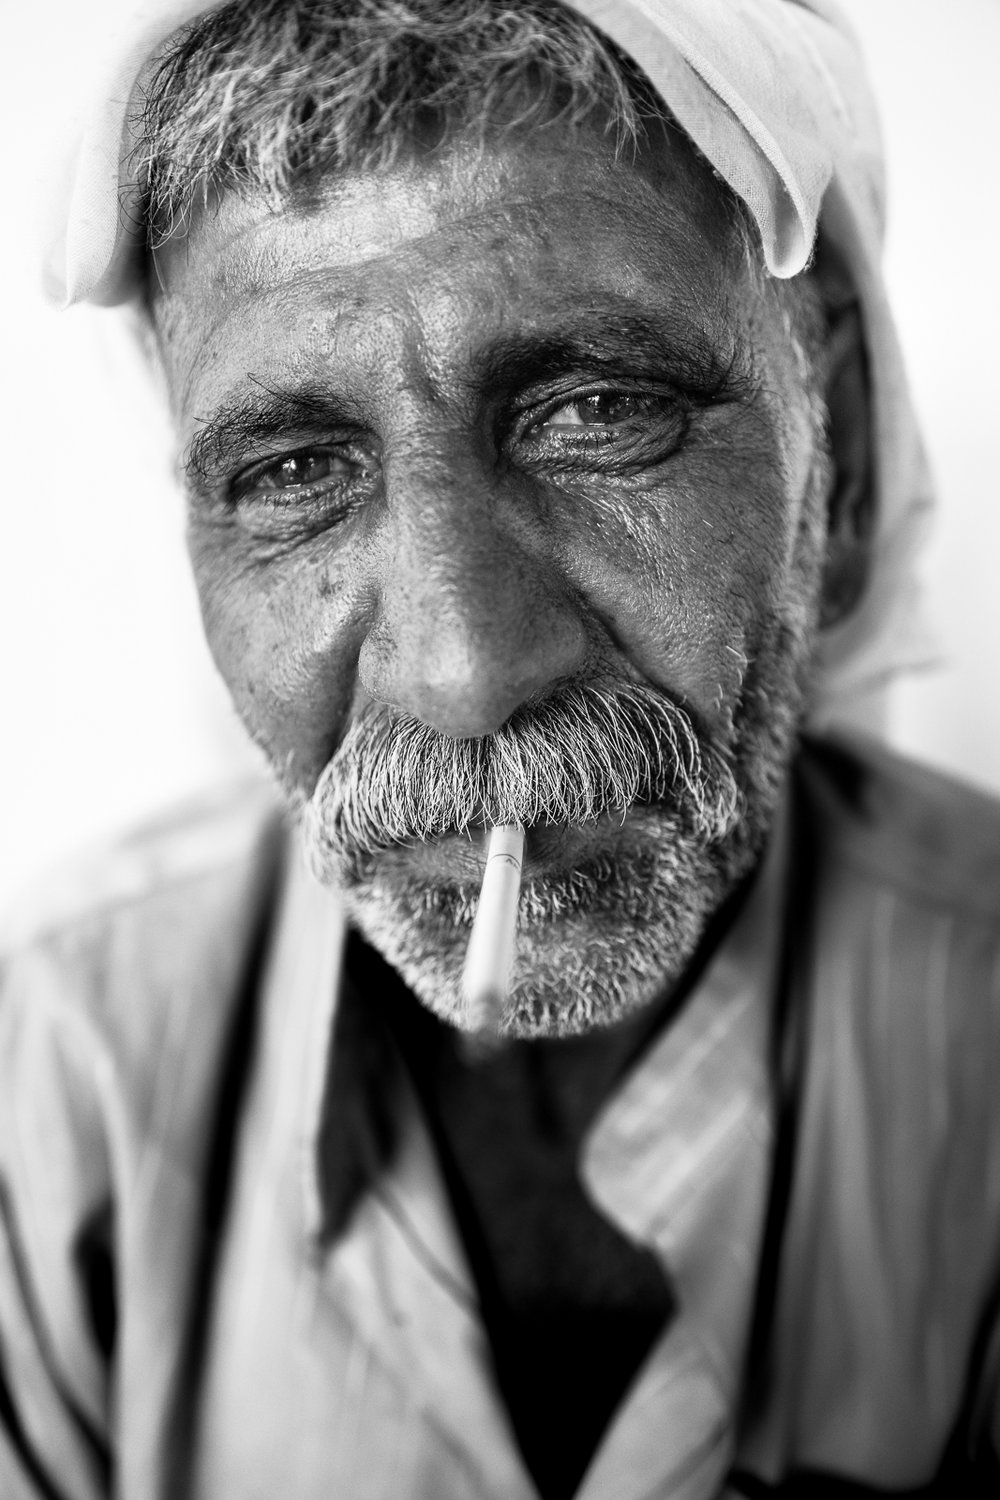 A Yazidi man and his cigarette inside Essian refugees camp, Iraq.